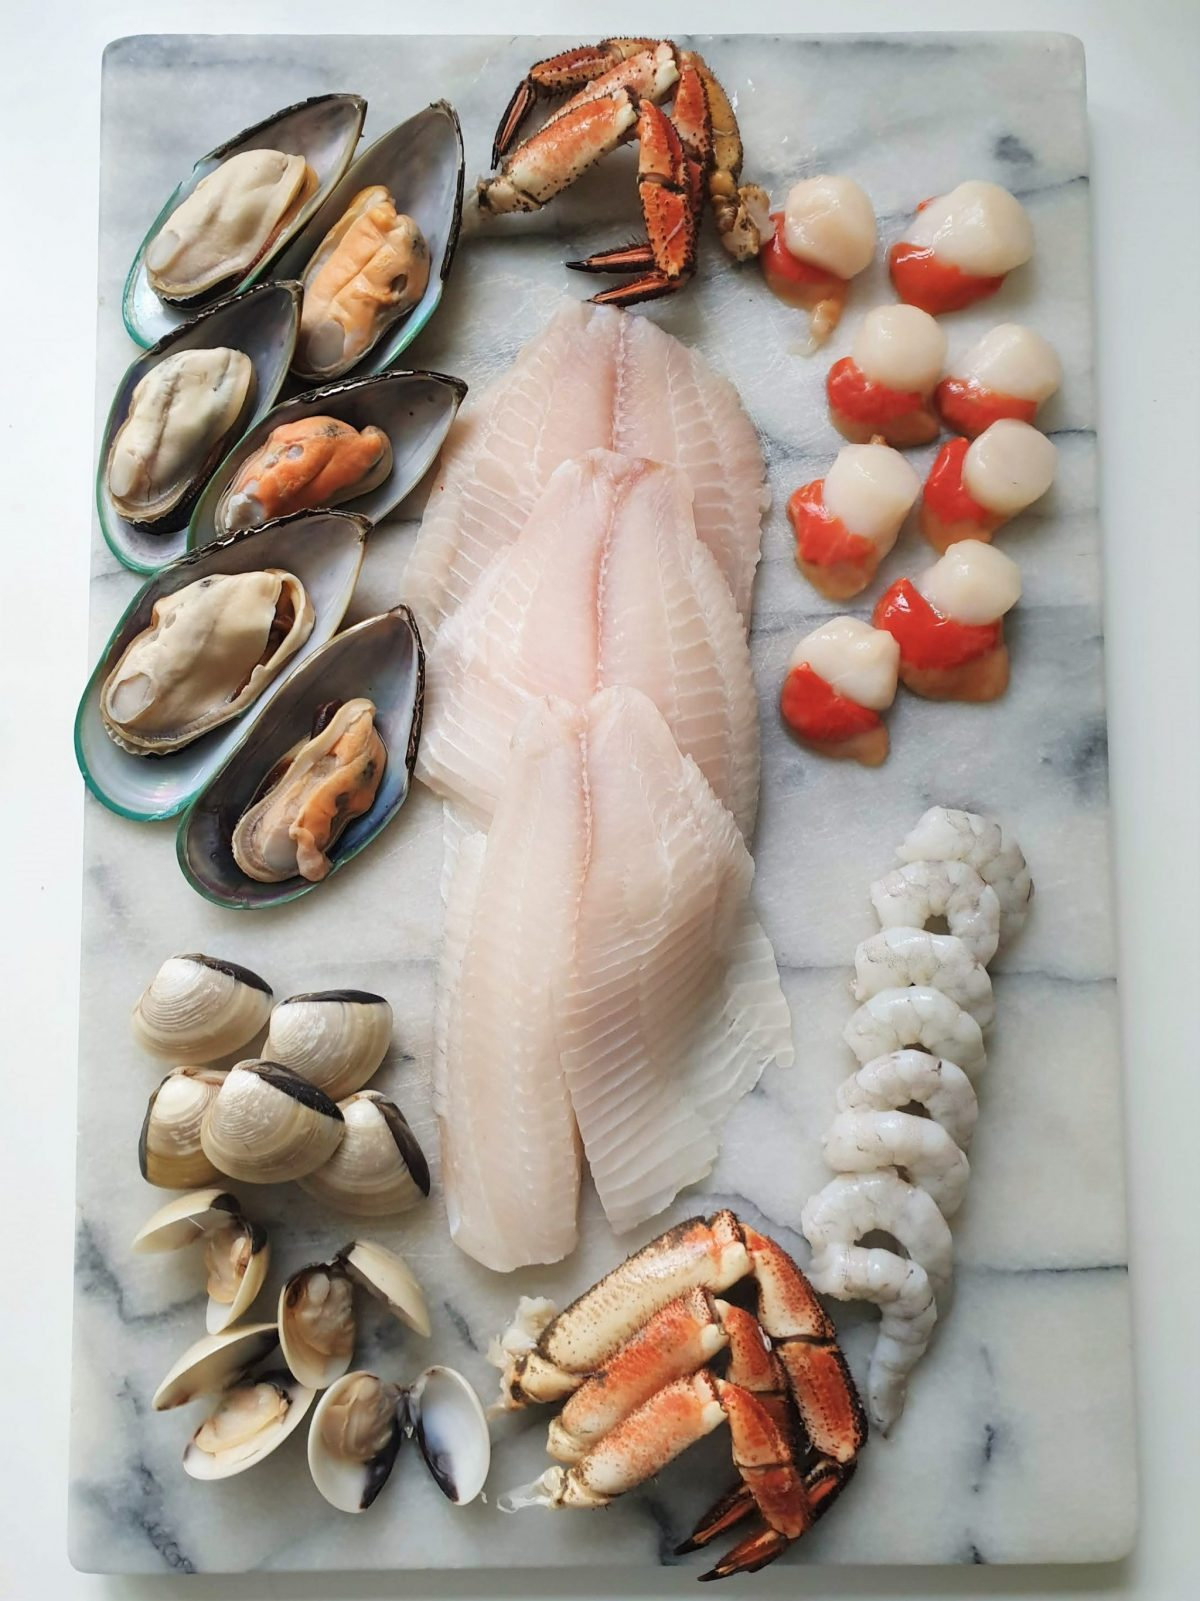 Cioppino shellfish collection from Berwick Shellfish Co.